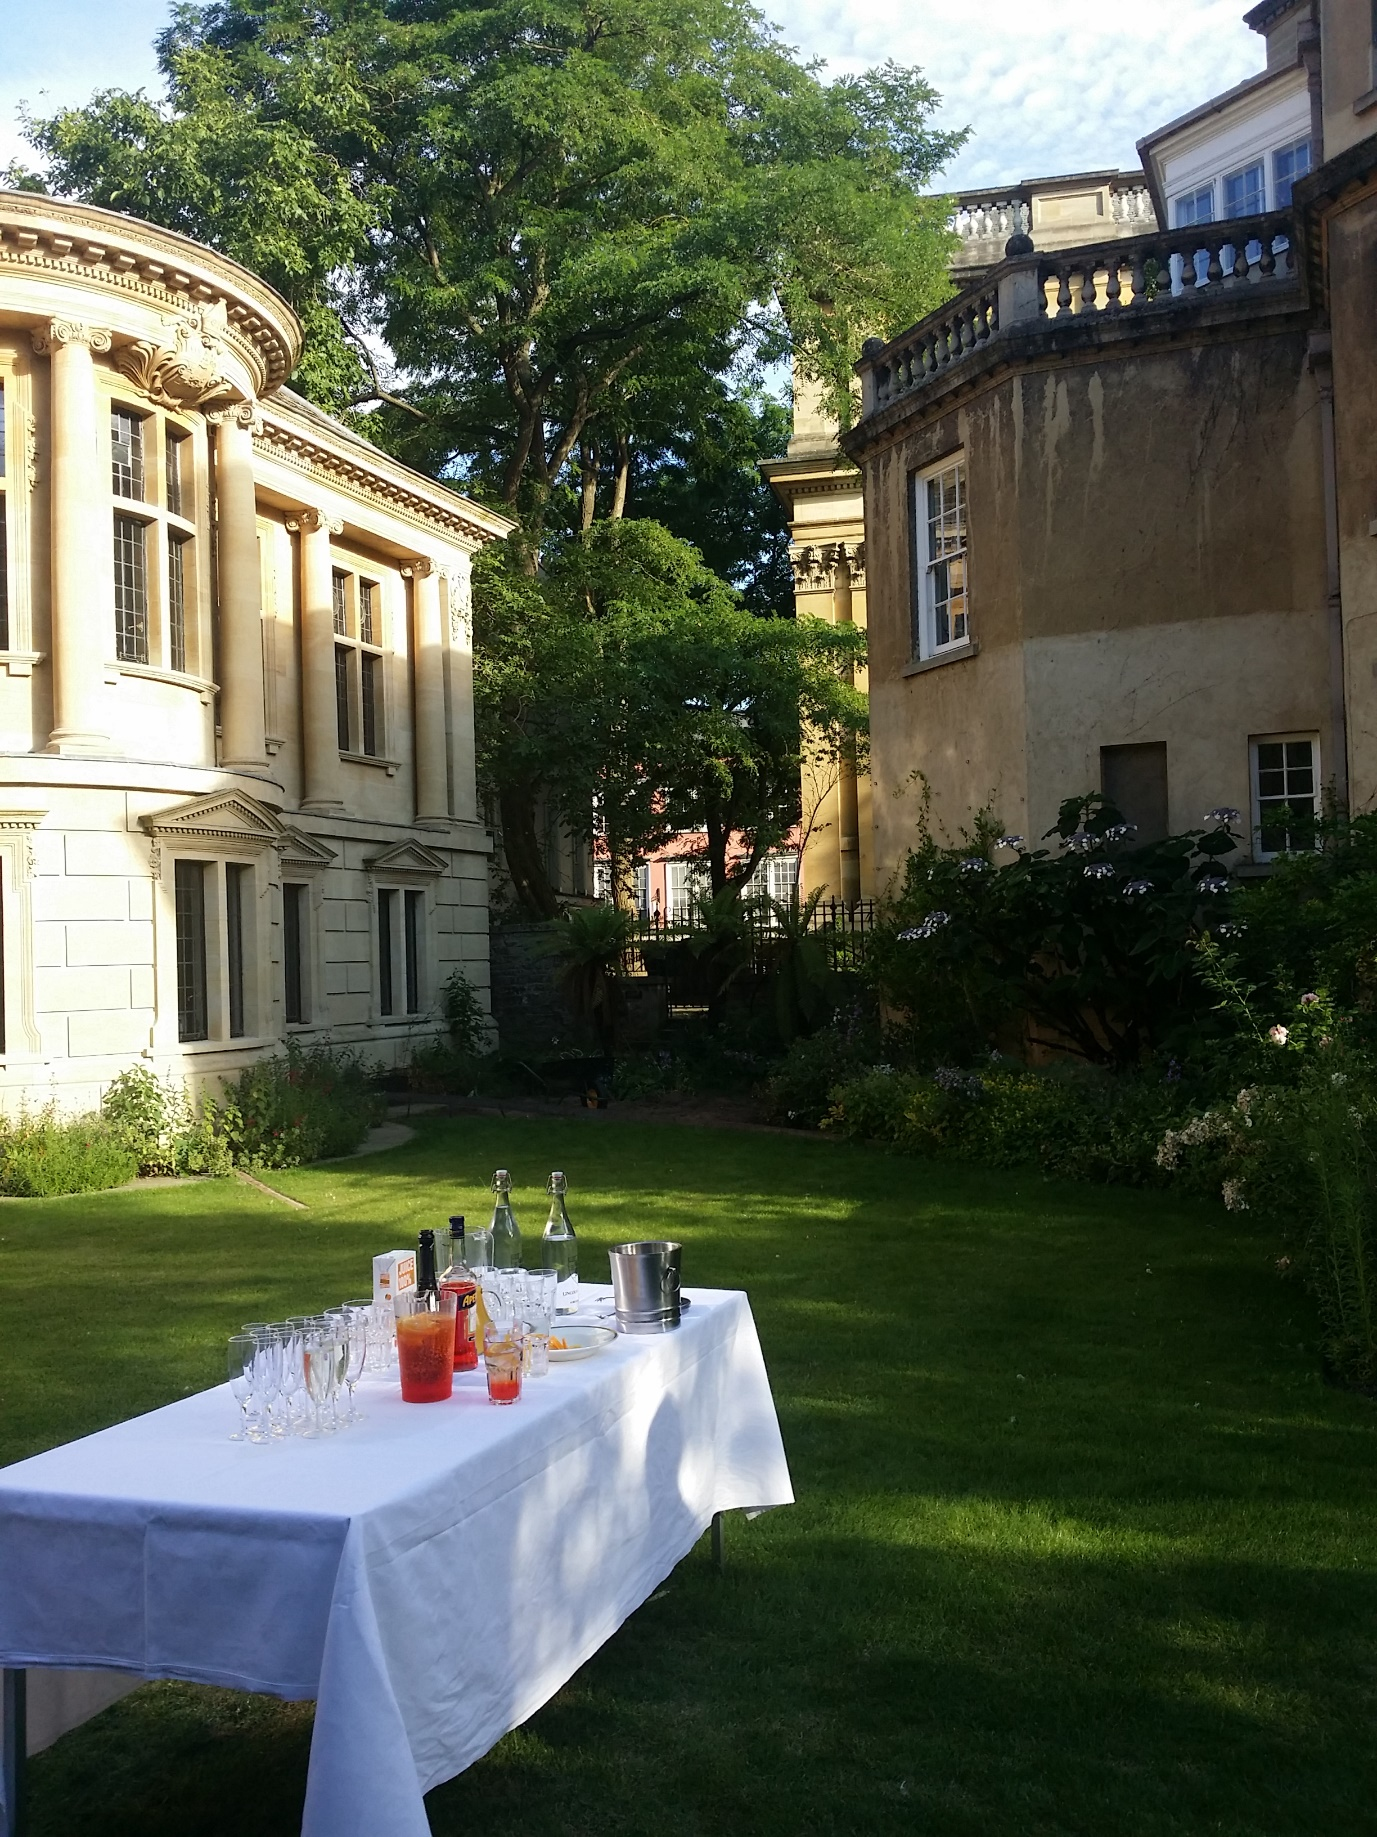 Refreshing and well deserved spritzers in the Rector's garden!